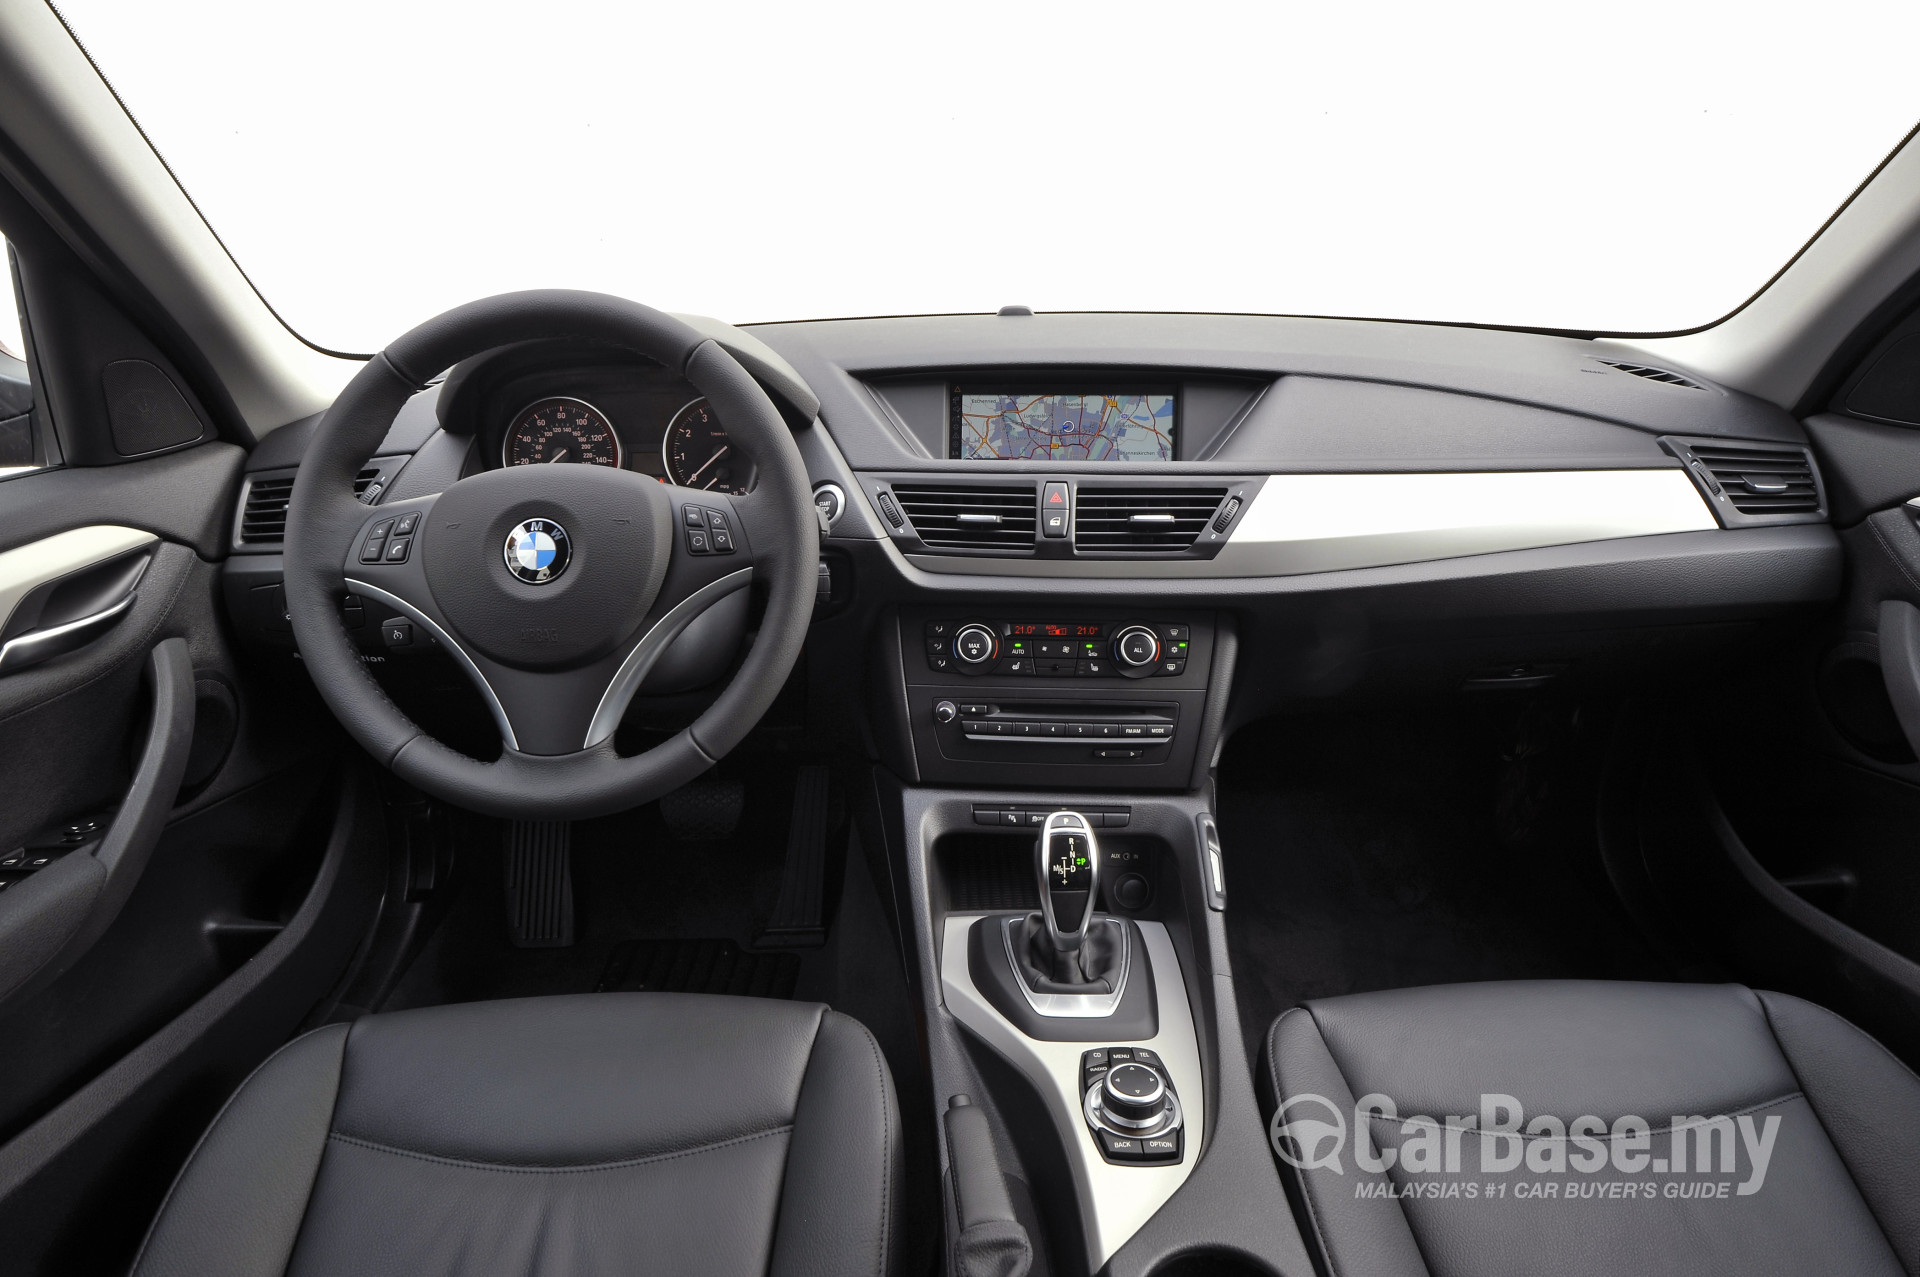 bmw x1 e84 lci 2012 interior image 2304 in malaysia reviews specs prices. Black Bedroom Furniture Sets. Home Design Ideas